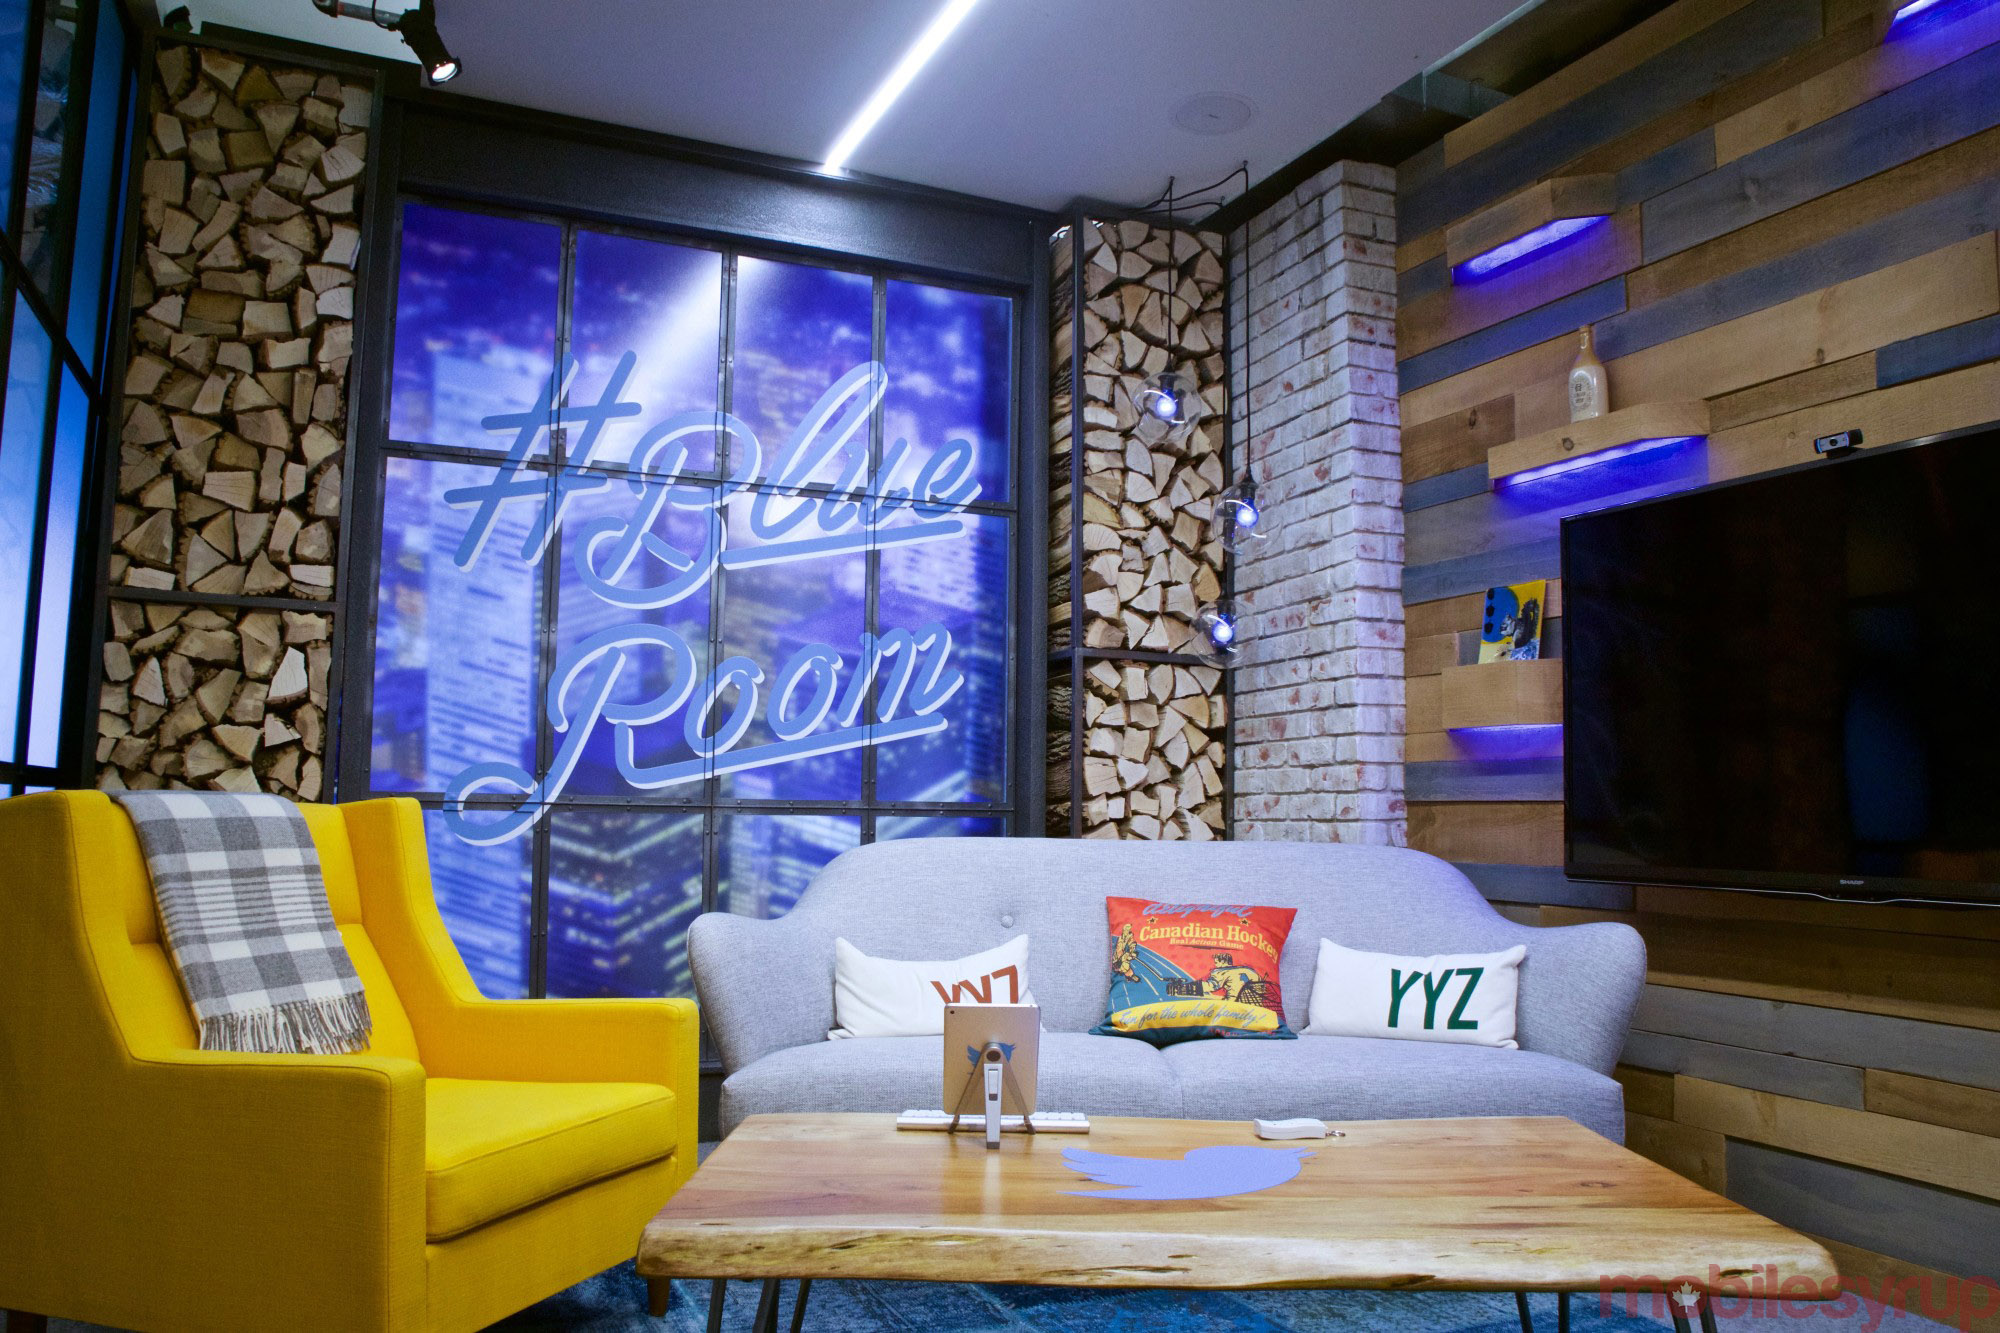 A relatively recent addition to Twitter Canada's office, the #BlueRoom is a fixture in many of Twitter's global offices. According to a company spokesperson, the room is used for hosting VIPs and influencers. On Monday, it hosted its first guest, the Blue Jays' Jose Bautista.